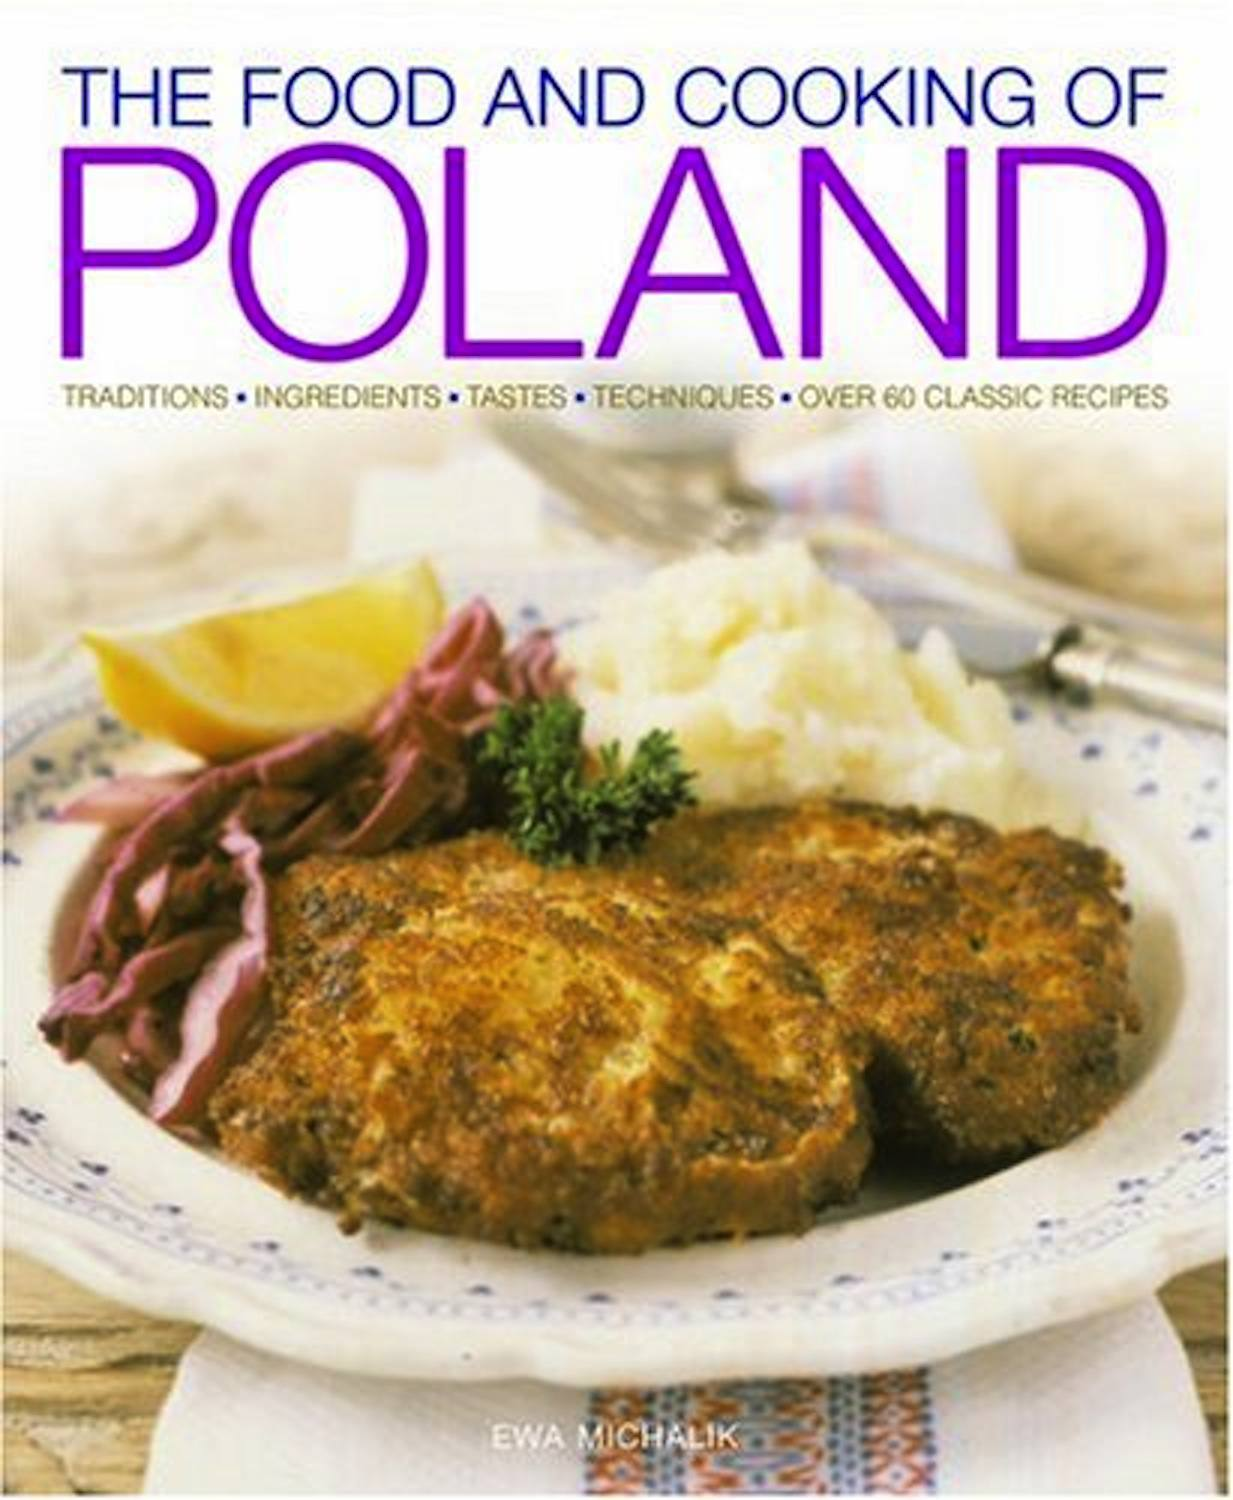 The Food and Cooking of Poland